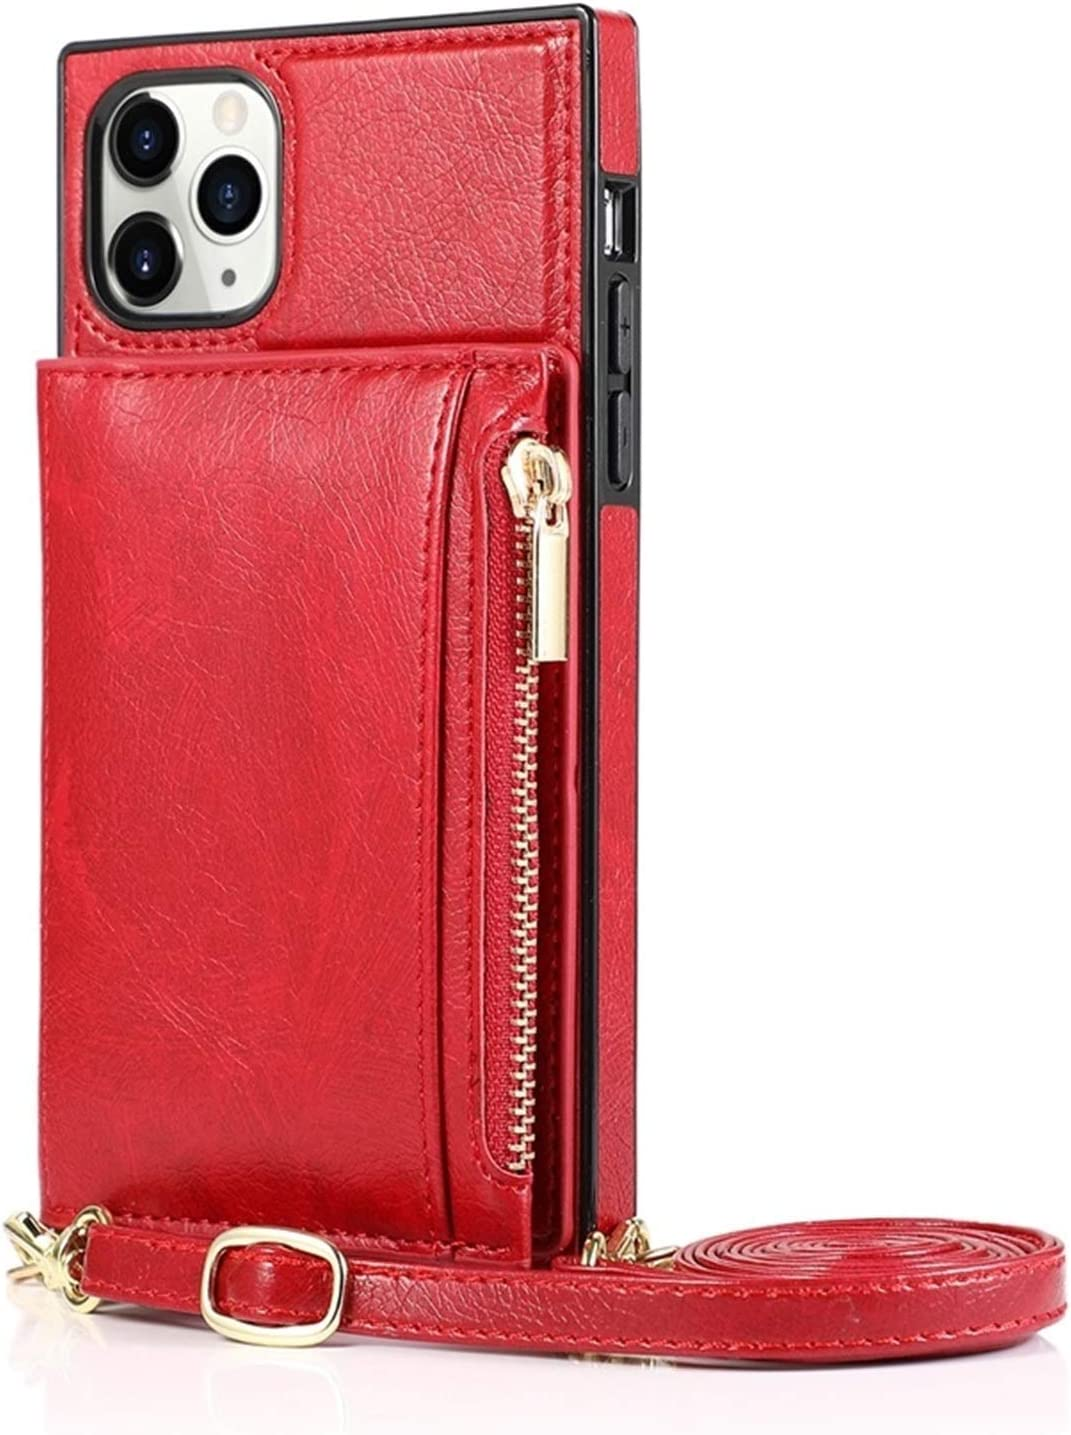 SLDiann Case Compatible with iPhone 11 Pro Max, Zipper Wallet Case with Credit Card Holder/Crossbody Long Lanyard, Shockproof Leather TPU Case Cover for iPhone 11 Pro Max 6.5-inch 2019 Release